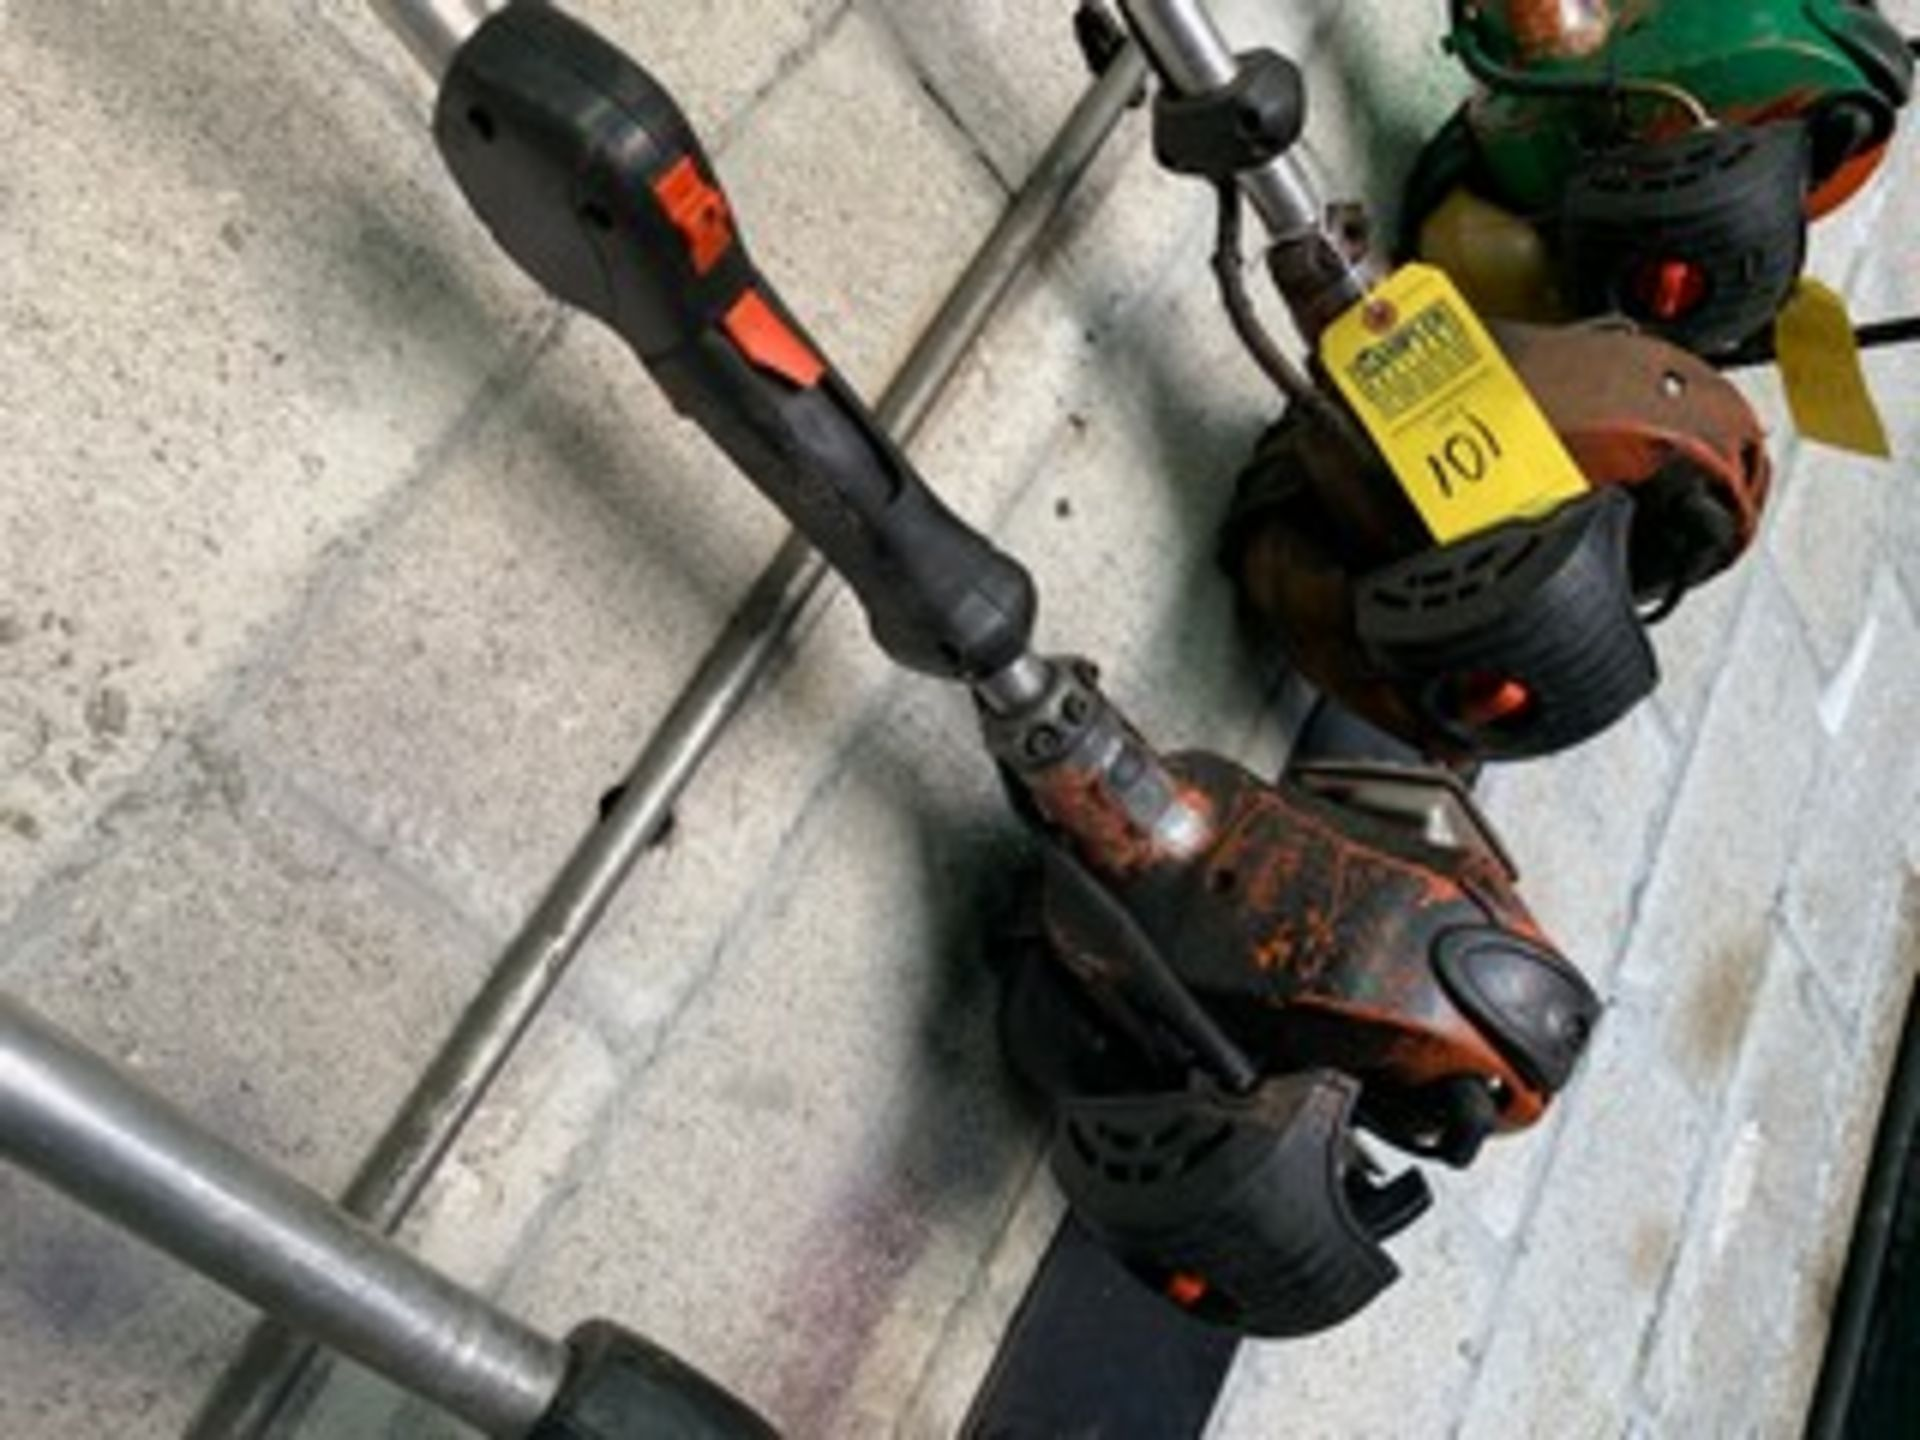 Lot 100 - ECHO GAS HEDGE TRIMMER